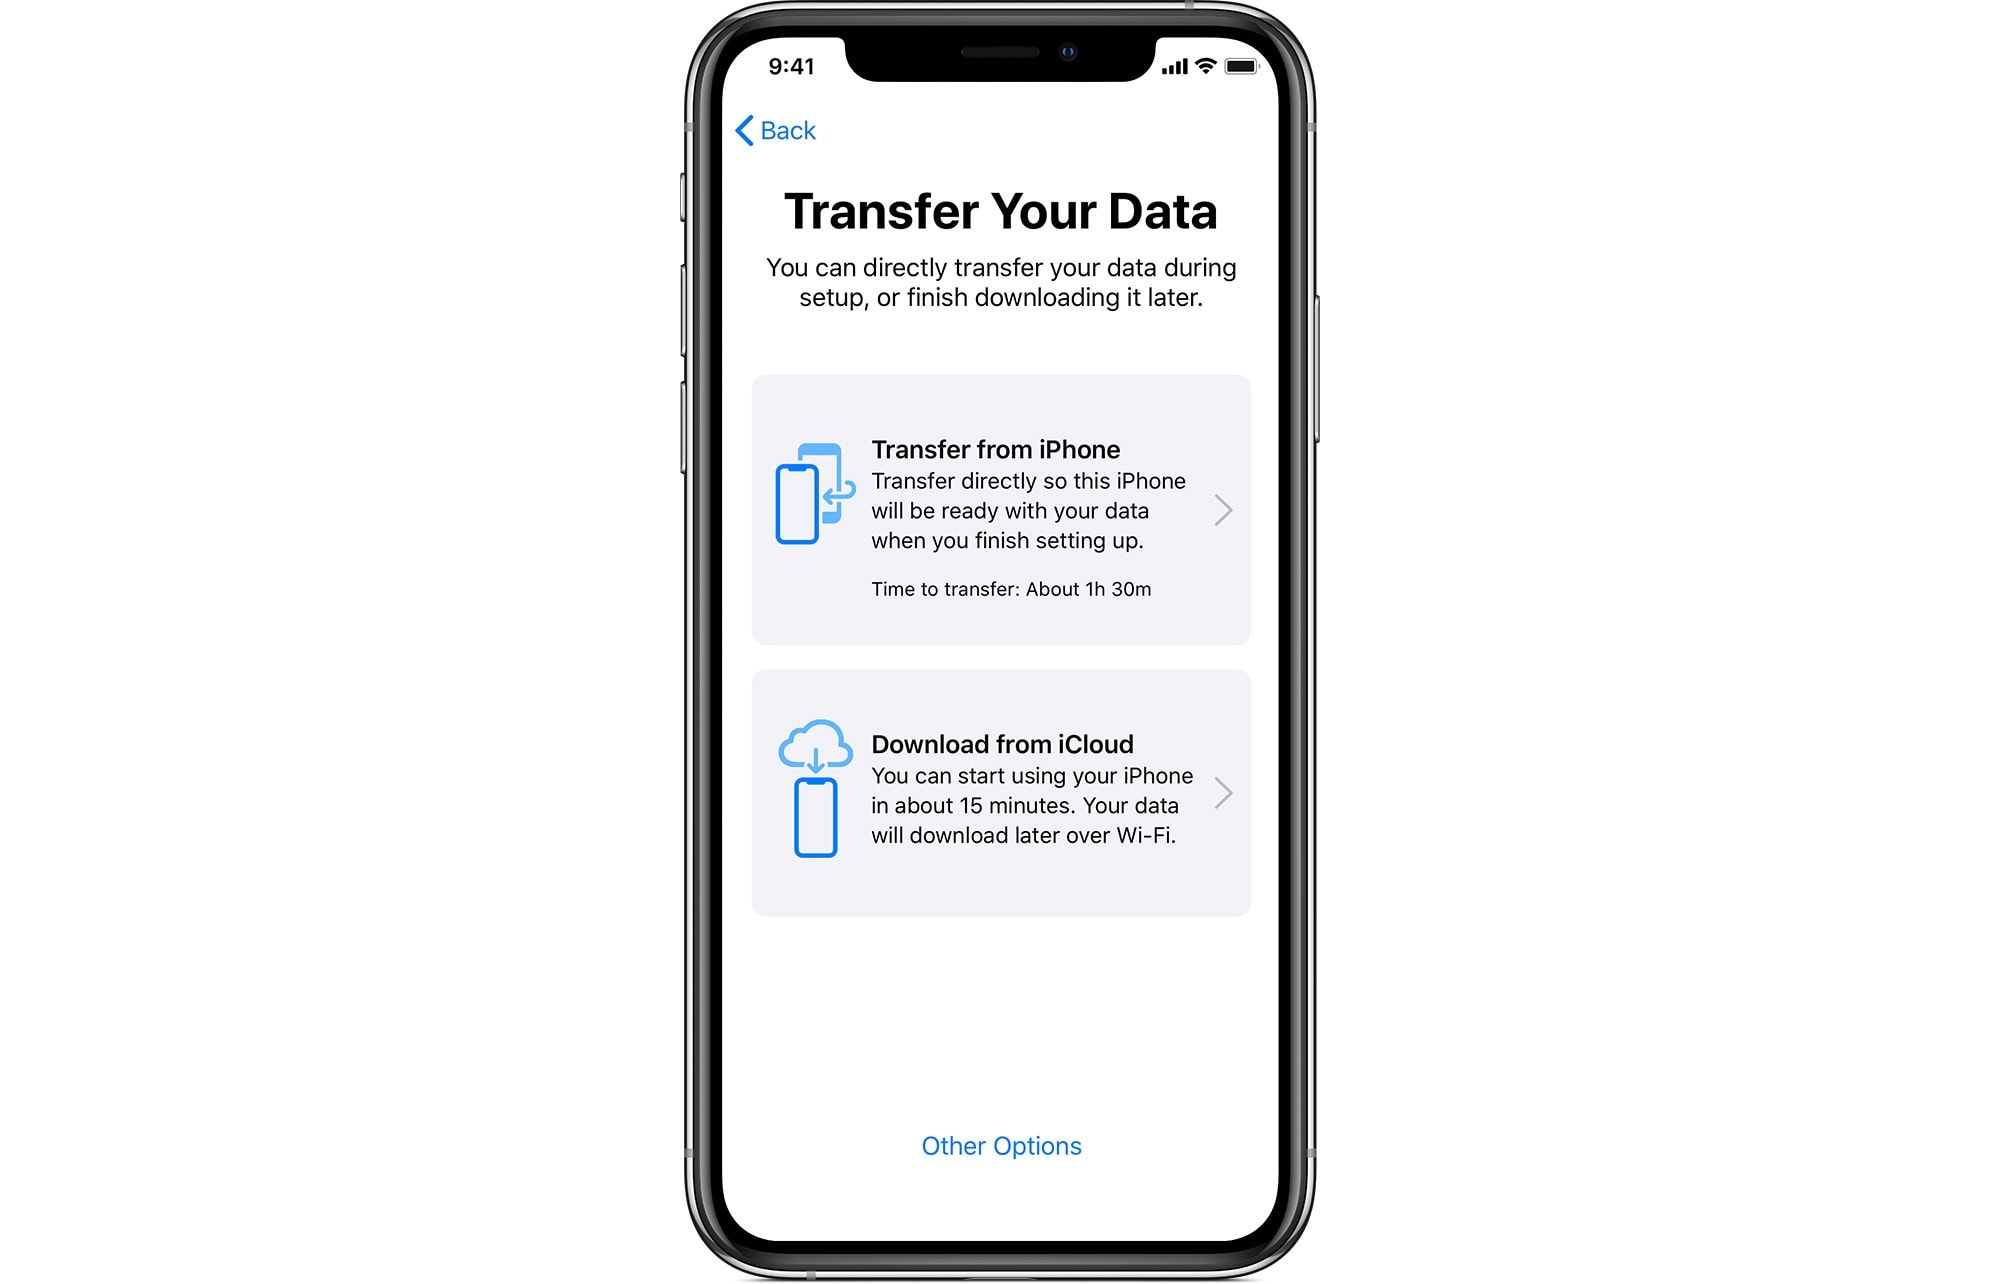 iPhone Migration appears as a new option on the Data Transfer screen.